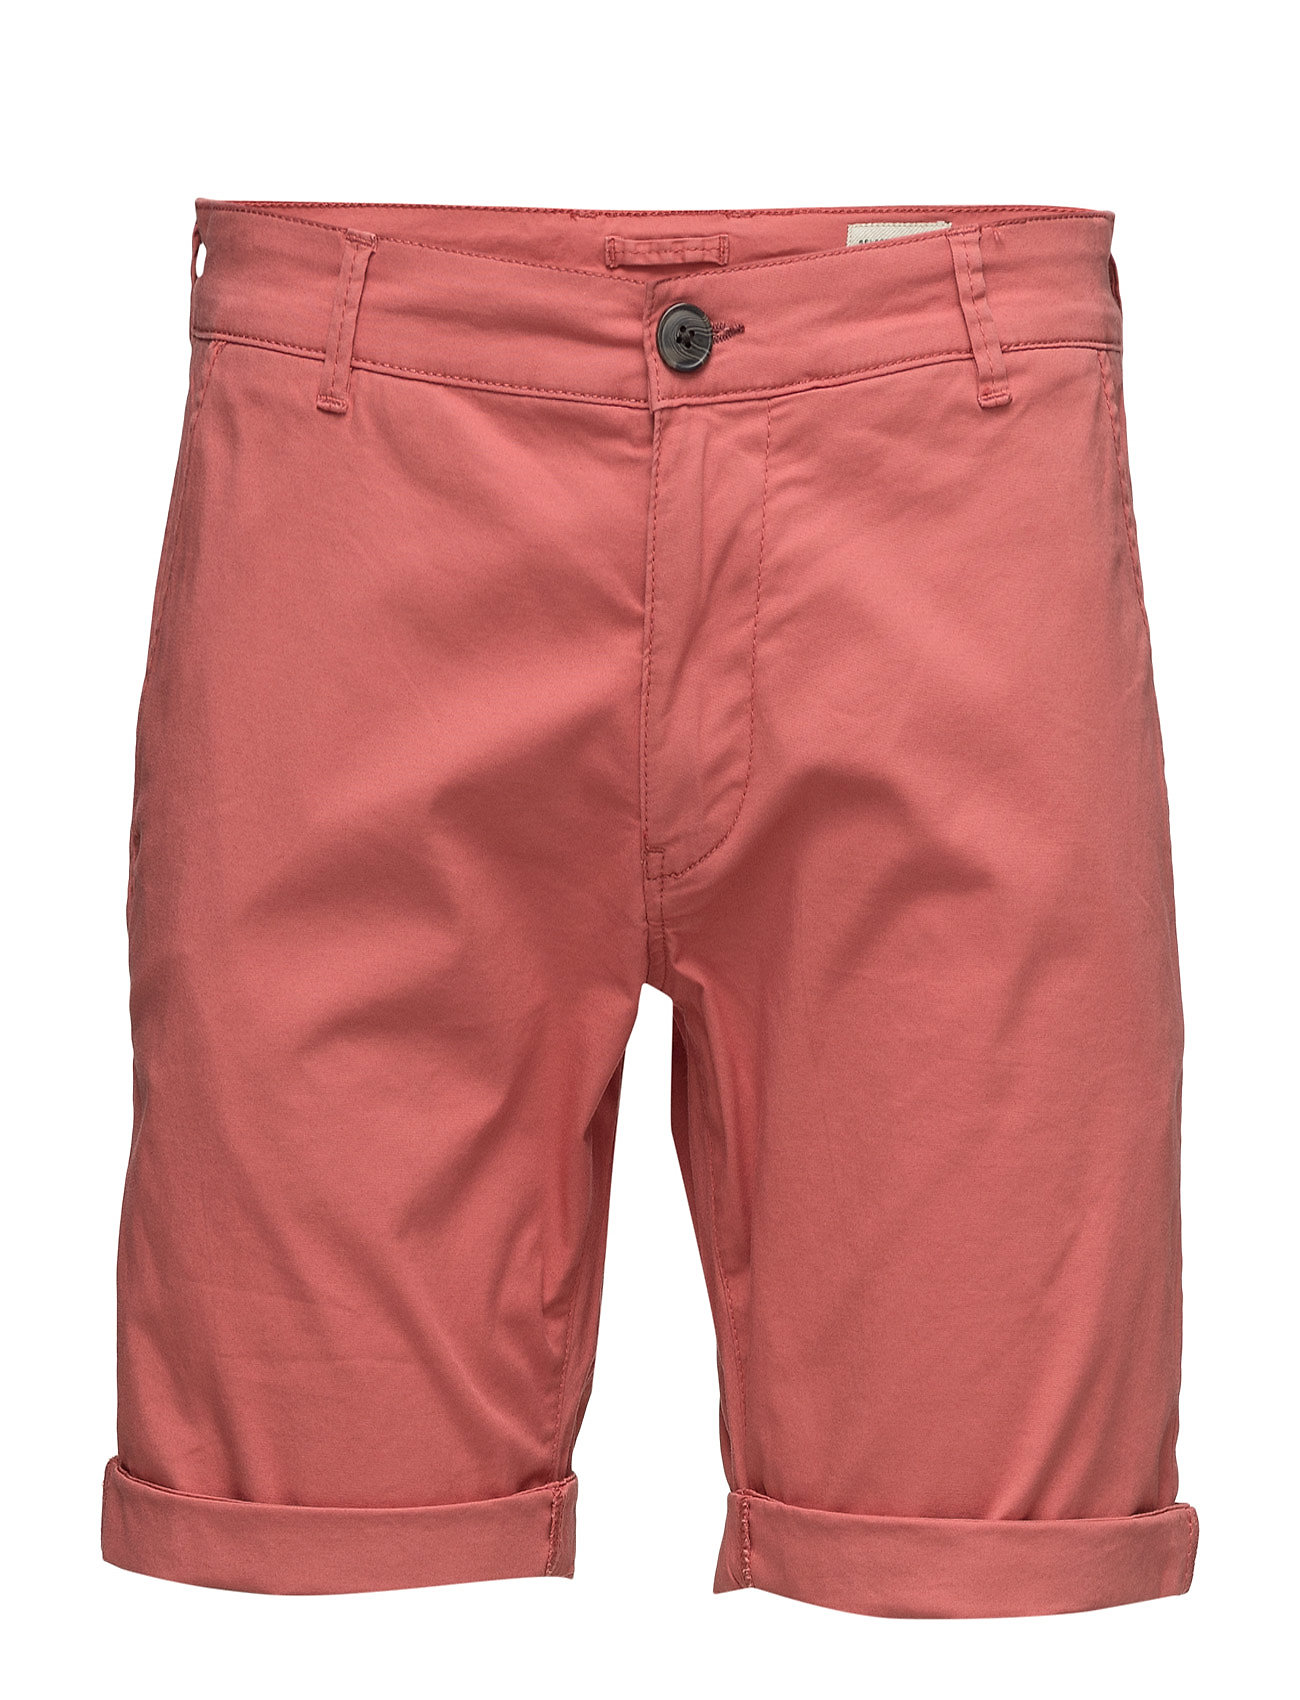 Shhparis Faded Rose St Shorts Selected Homme Bermuda shorts til Herrer i